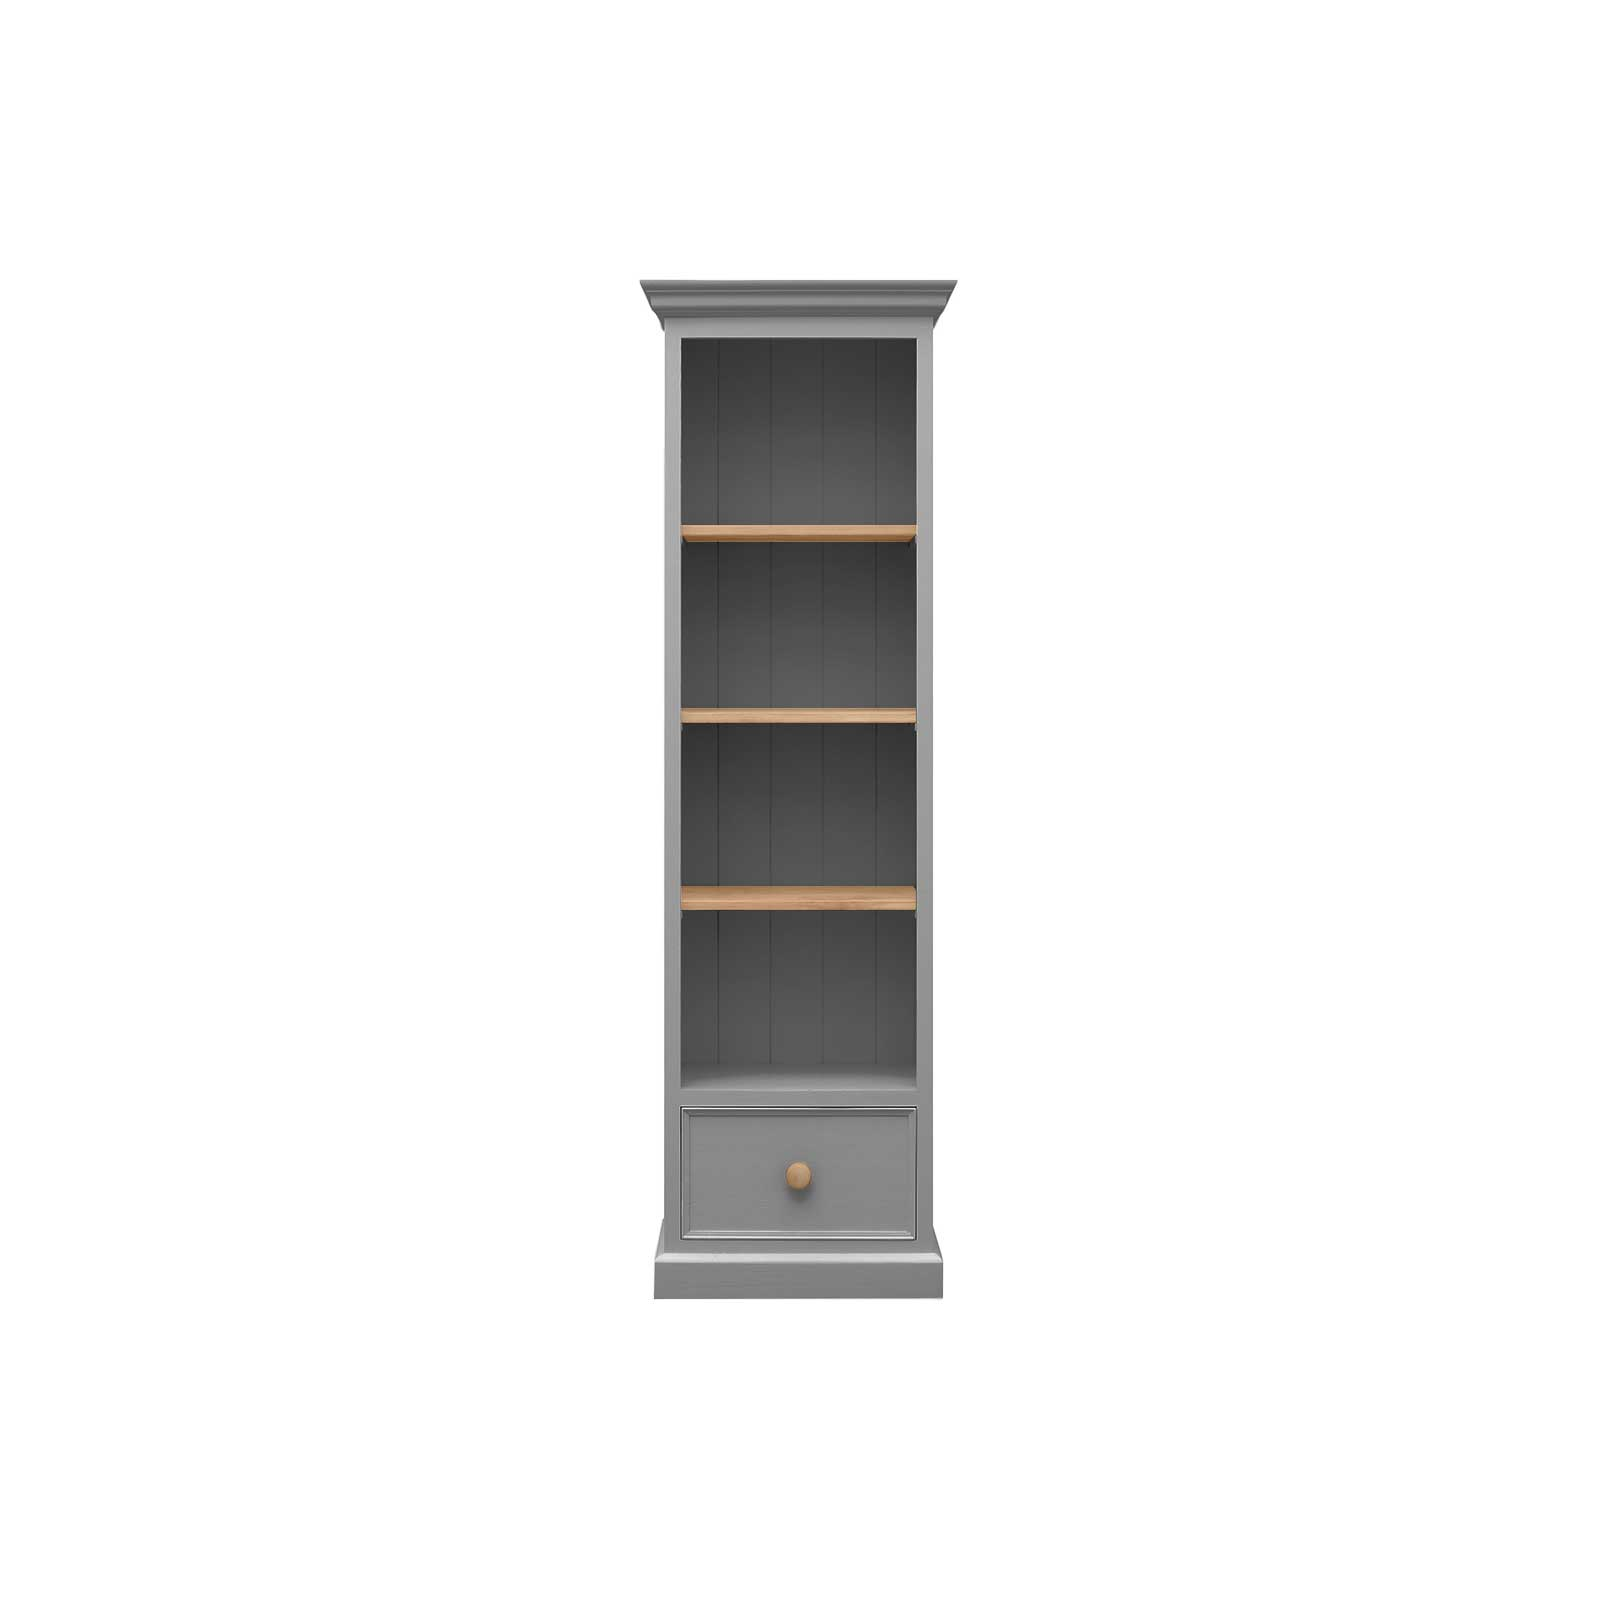 Sh Mbk204s Not Soho Shabby Chic Stone Grey Painted Furniture 1 Drawer Slim Bookcase